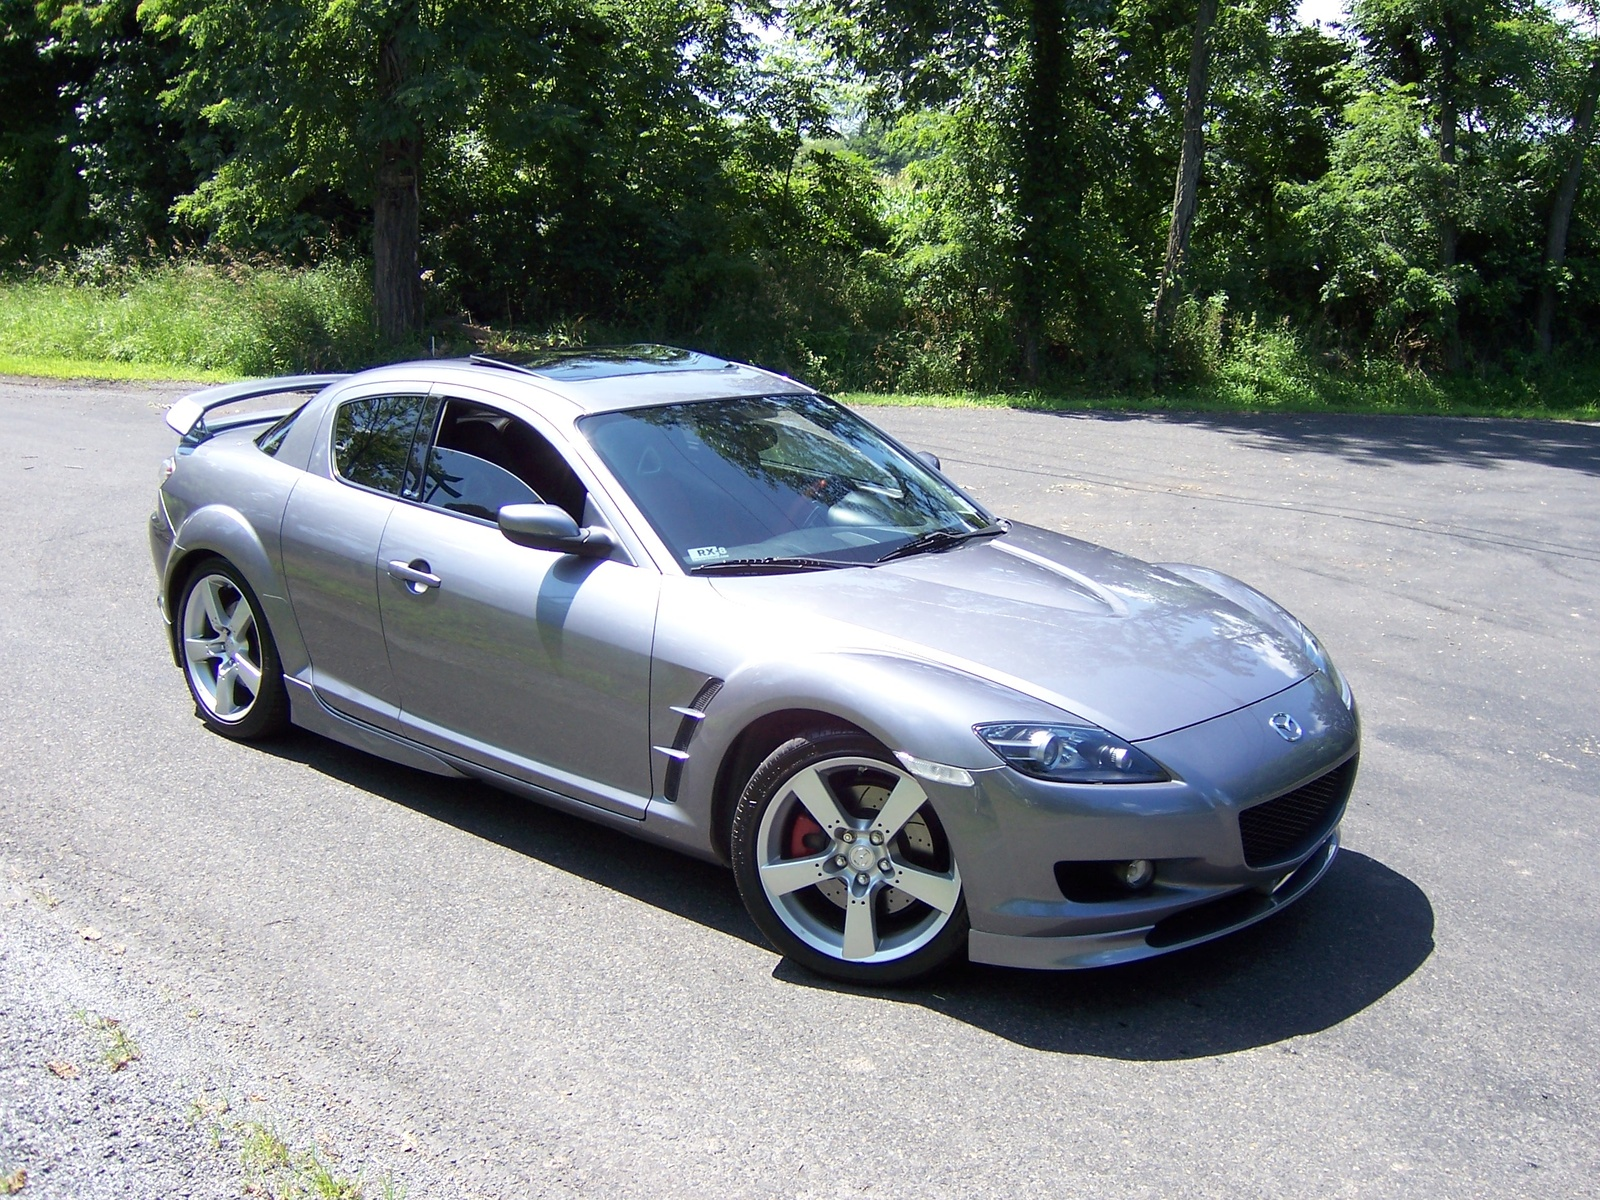 2005 mazda rx 8 pictures cargurus. Black Bedroom Furniture Sets. Home Design Ideas